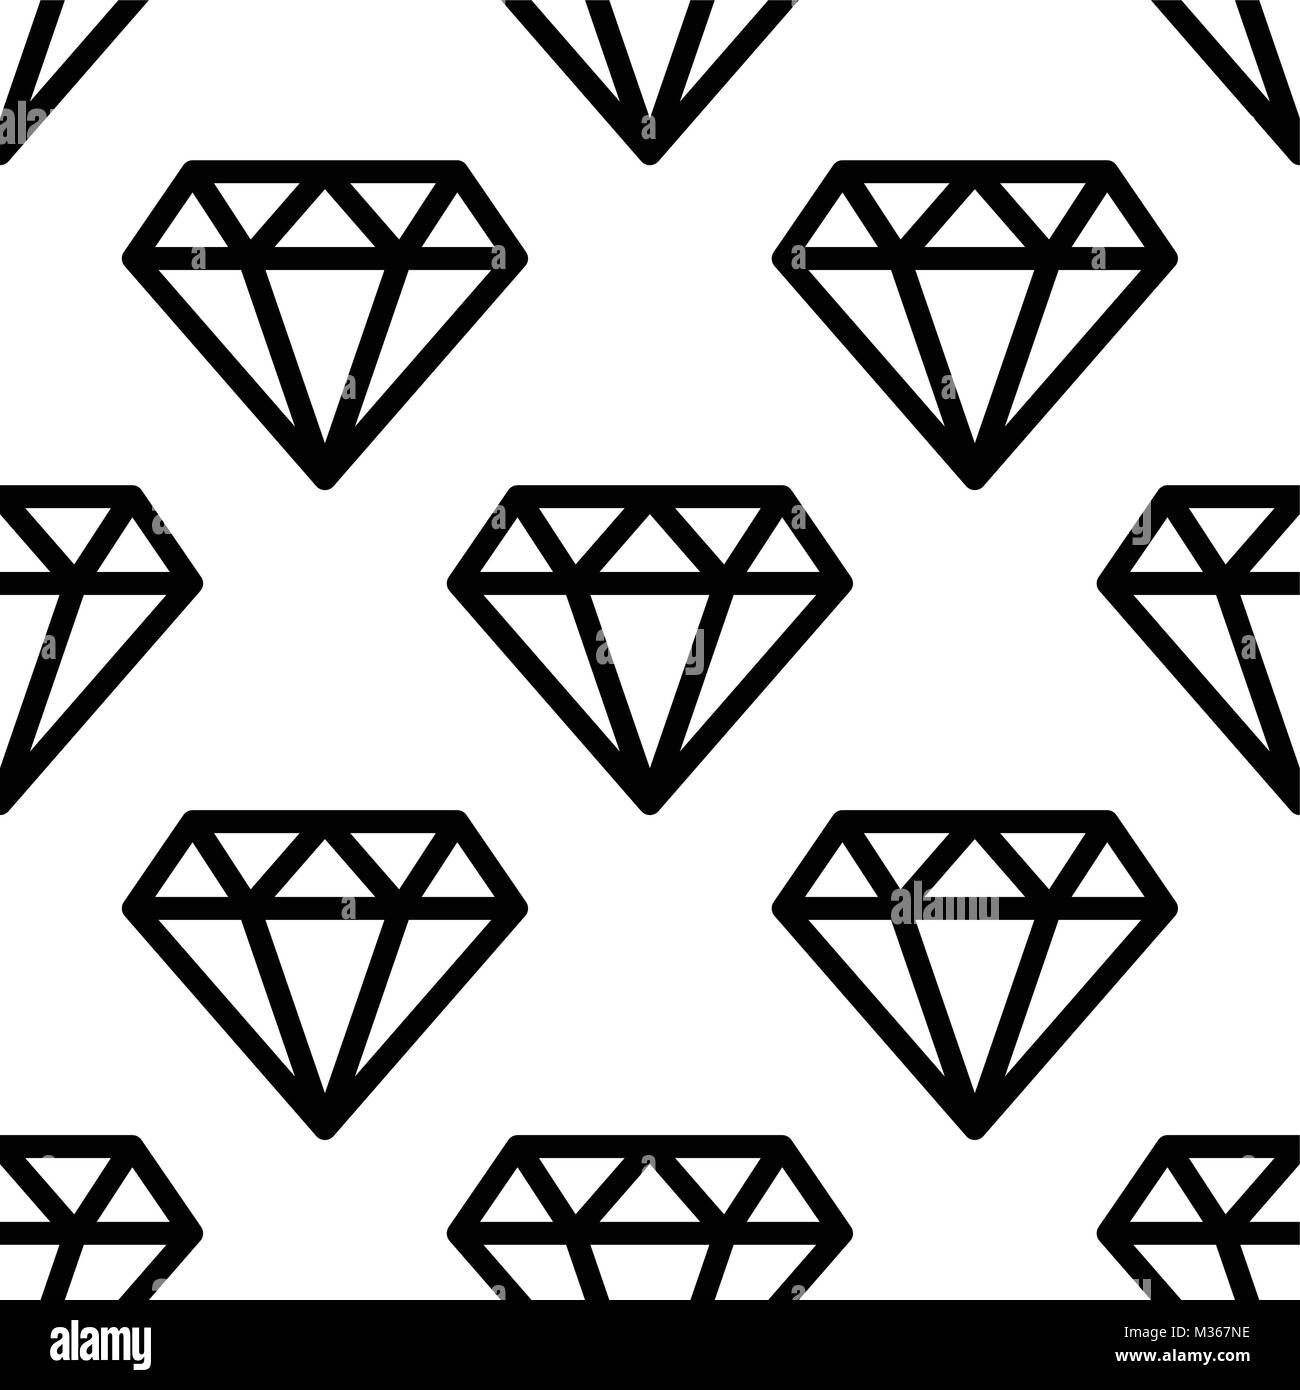 Hipster Diamond Pattern Abstract Shapes Seamless Vector